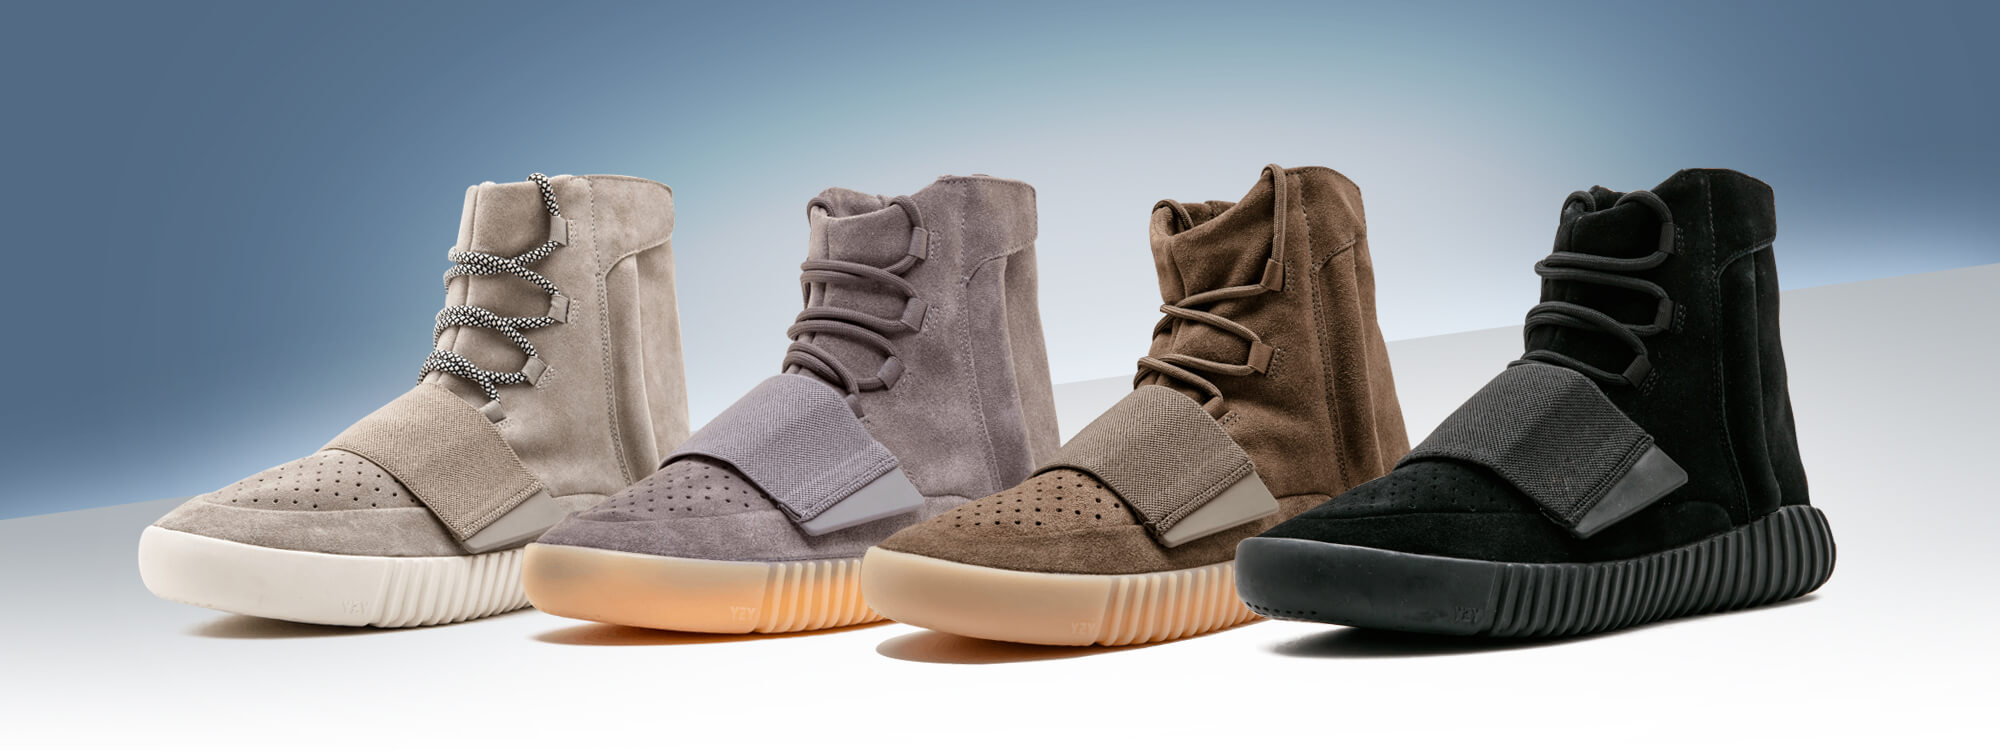 Perfect Adidas Yeezy Boost 750 Free Shipping via DHL cheap